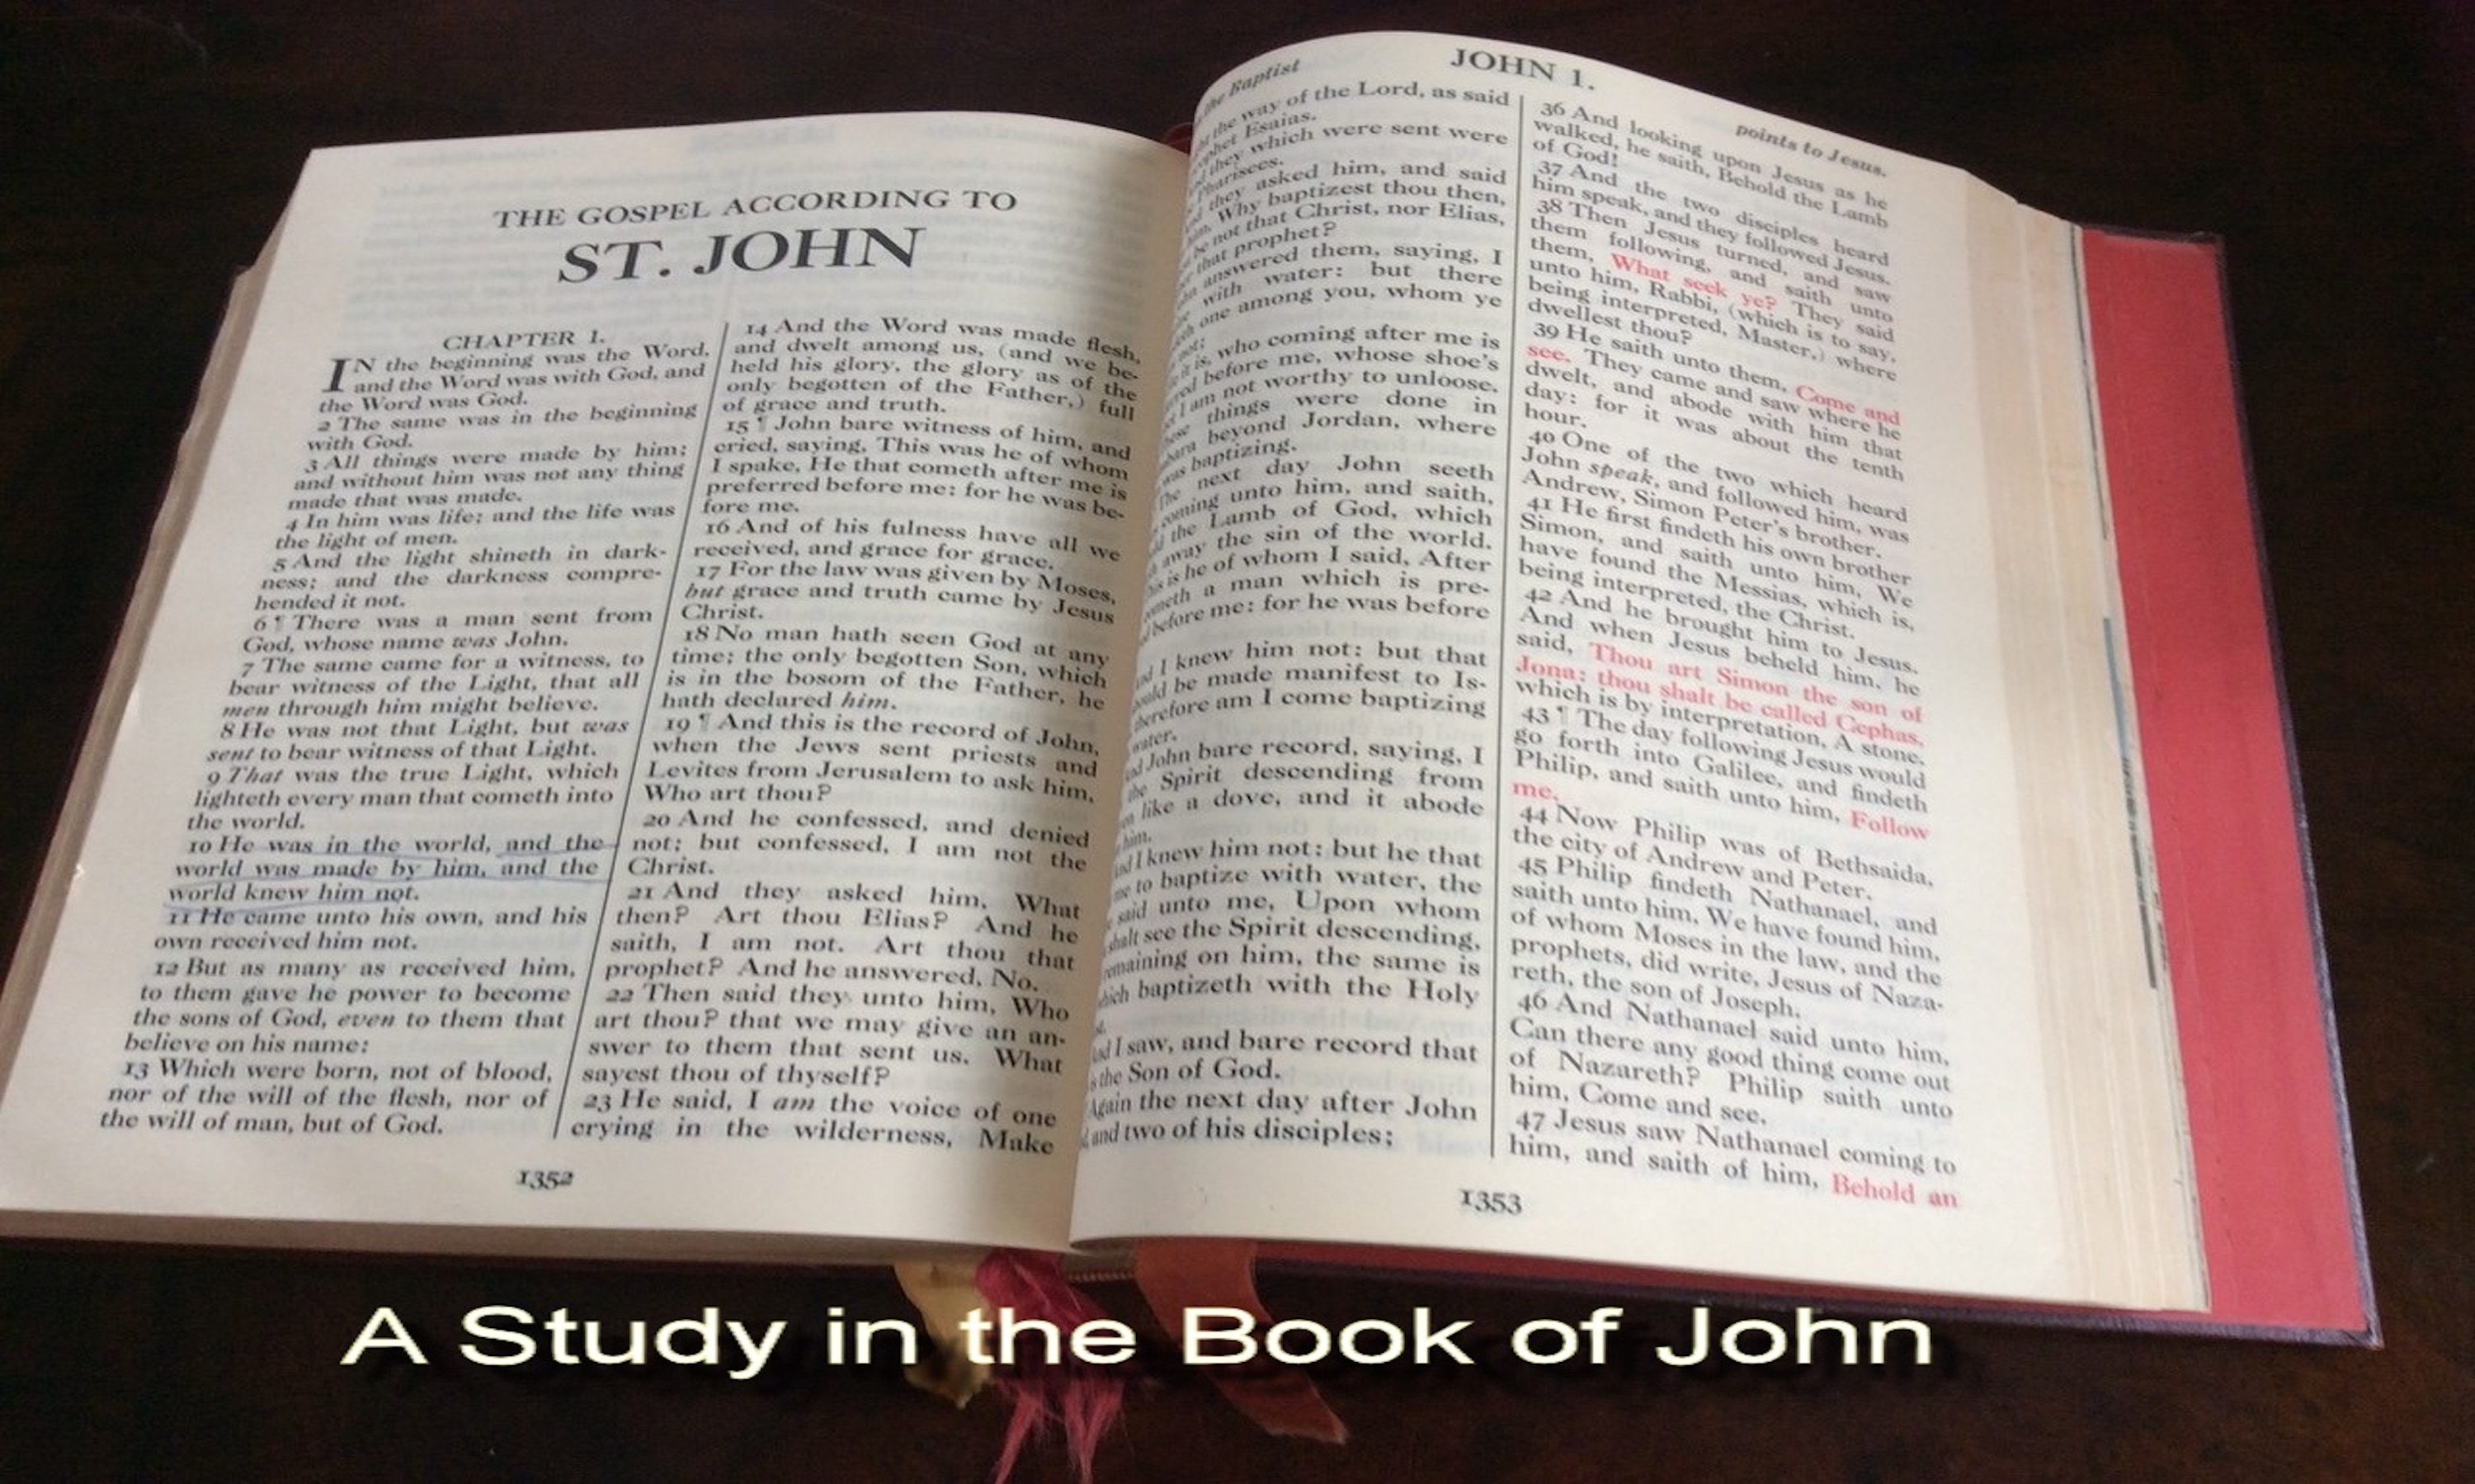 StudyintheBookofJohn